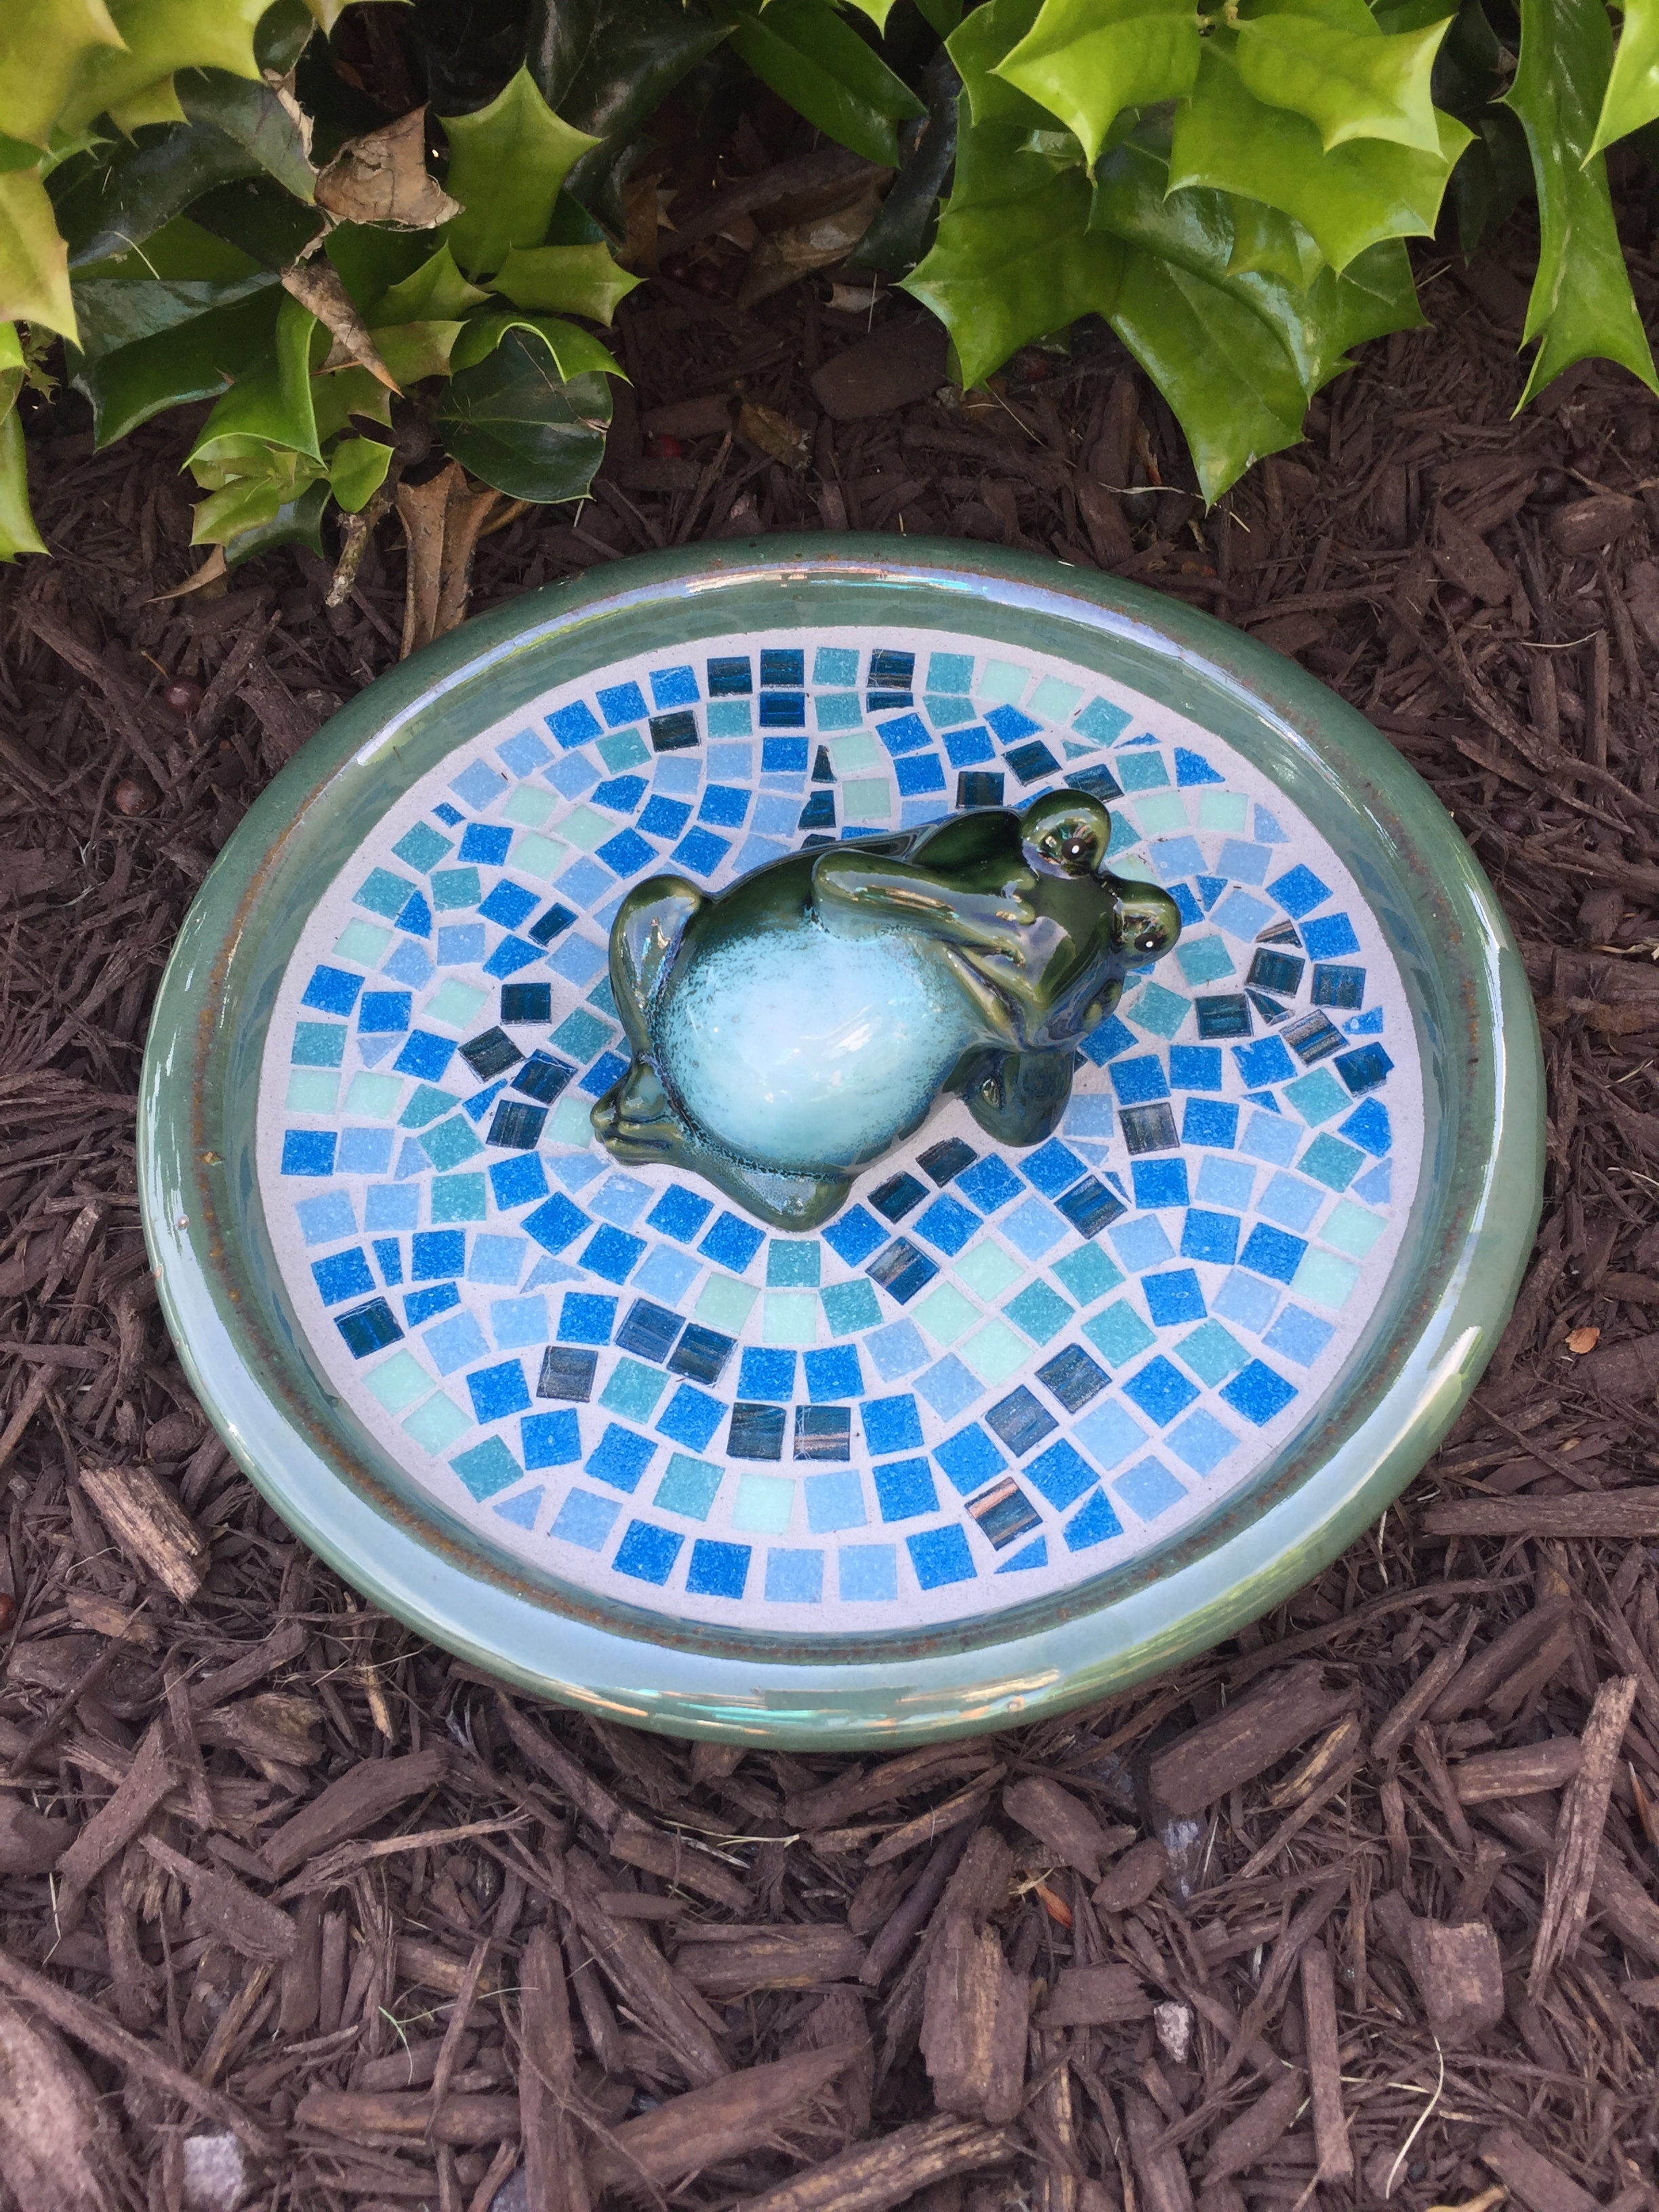 Saturday, March 17 at 9:30 AM -2:30 PM   Mosaic Froggie Birdbath Class  · Hosted by    Artfully Yours Studio     1303 Jamestown Rd, Williamsburg, Virginia 23185    and  Tinted Hues